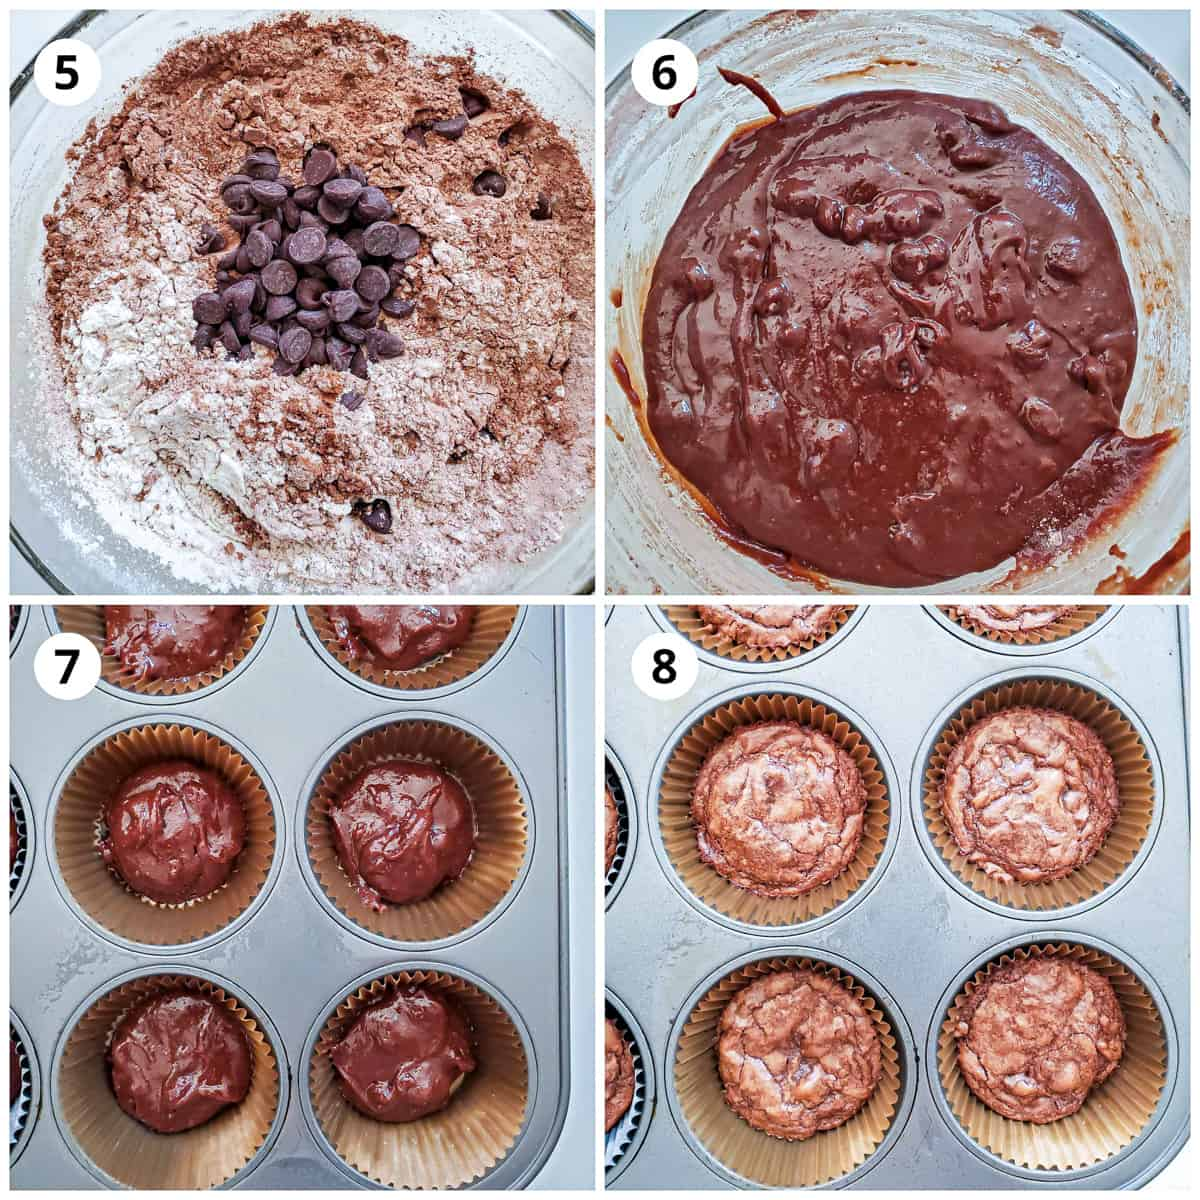 Making the brownie batter and baking them in muffin pan